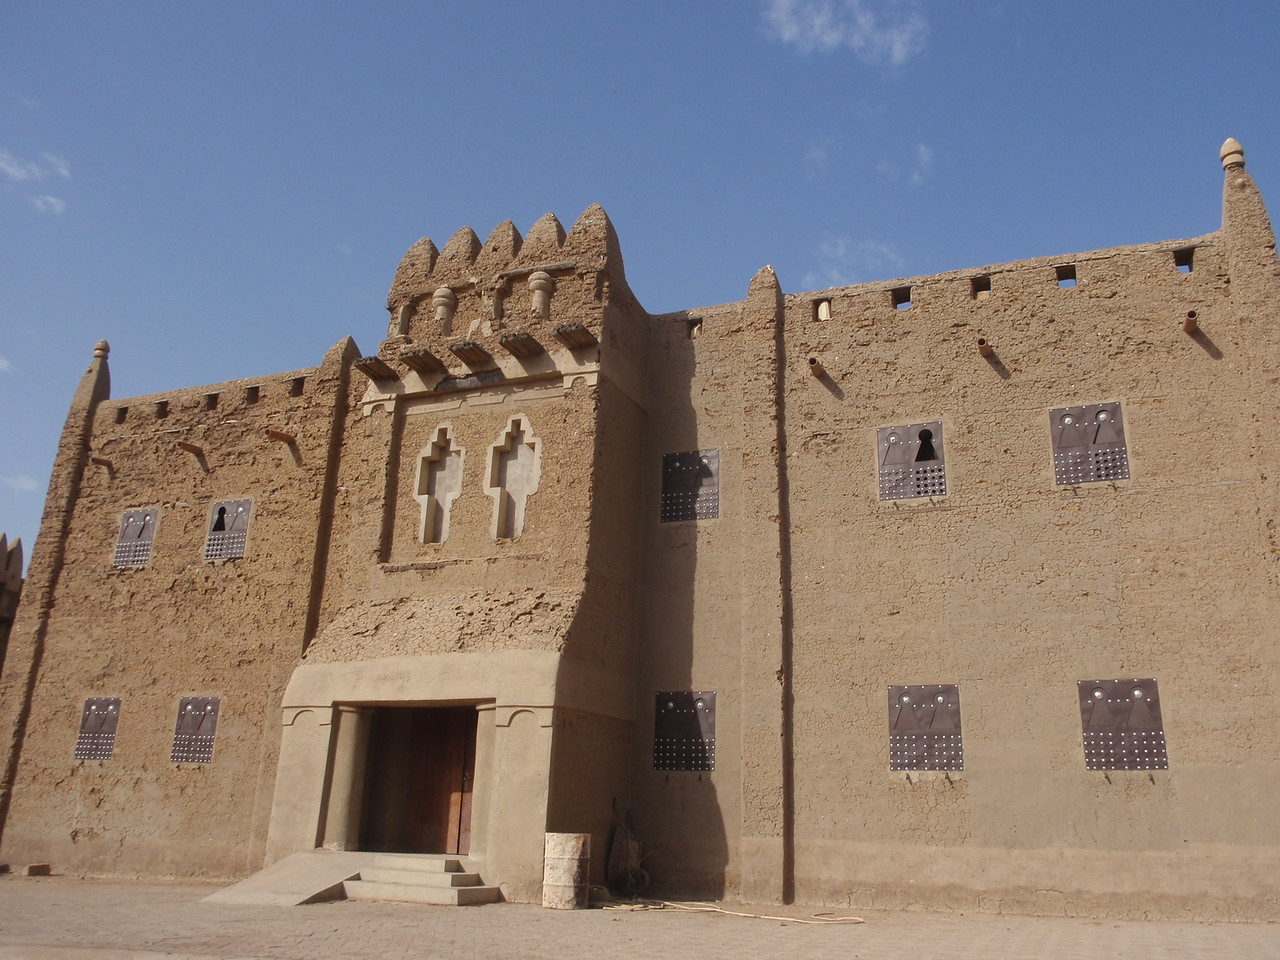 174_Djenne Old Town  Moroccan or Moorish-style Structure